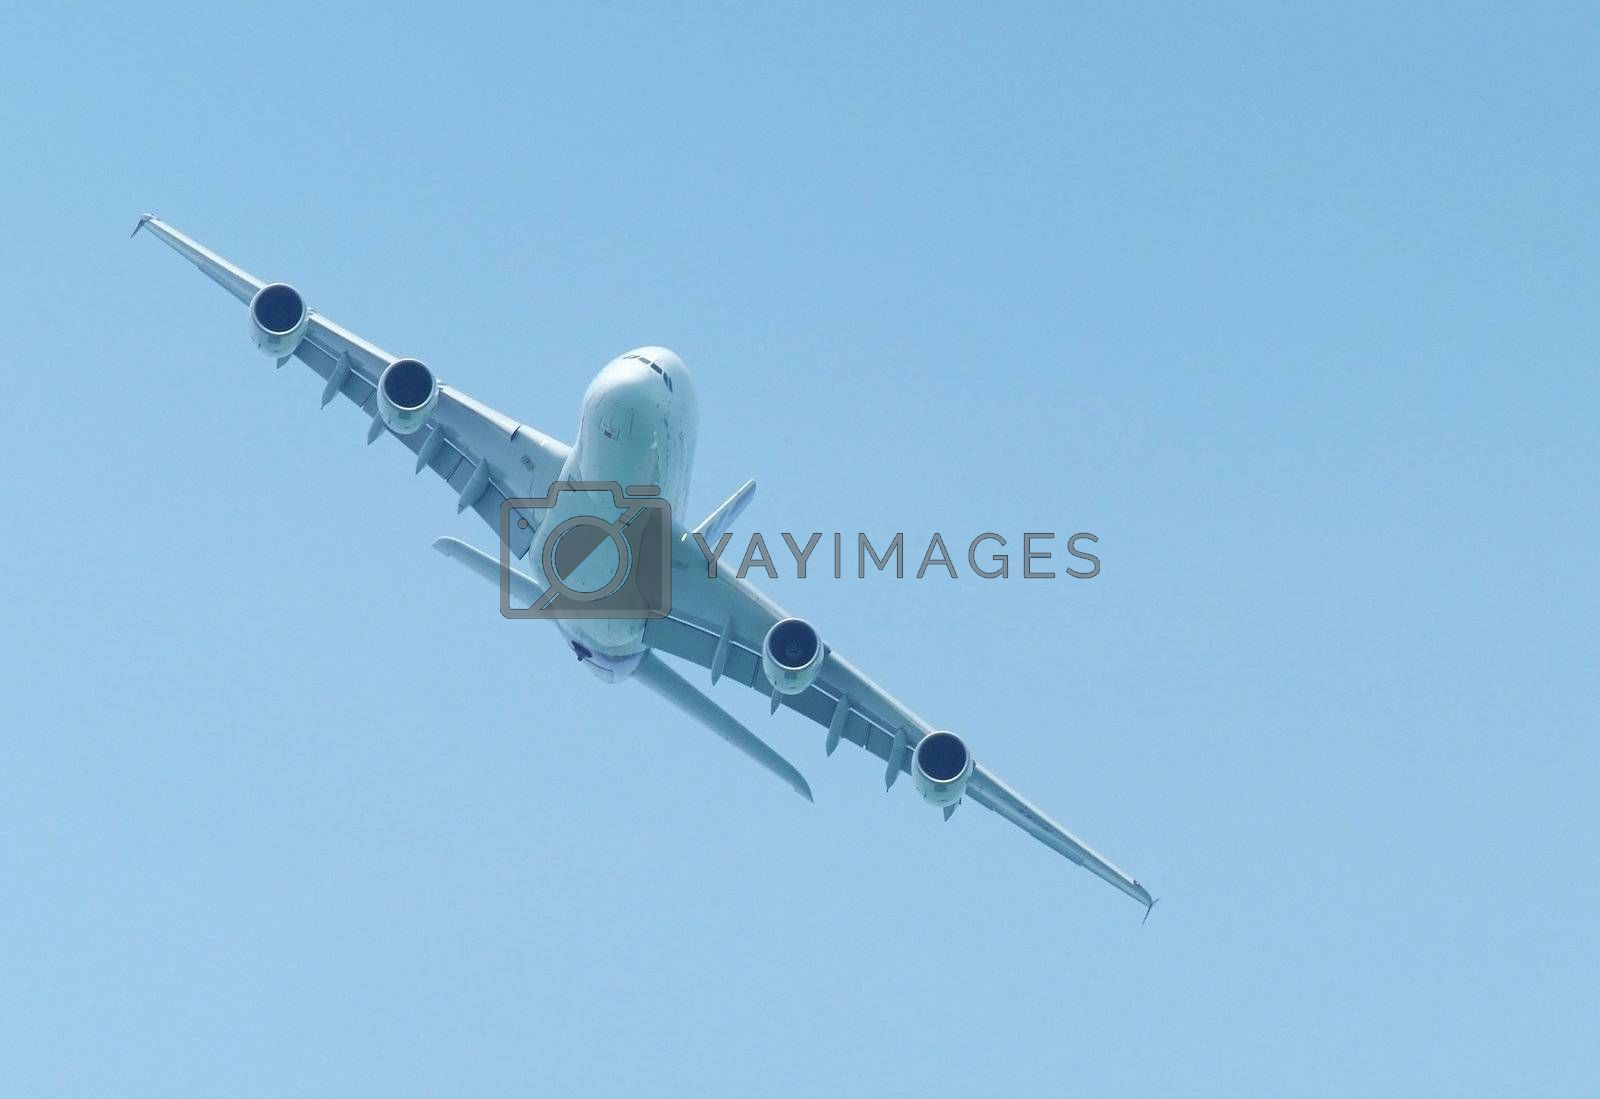 Large airliner flying by epixx